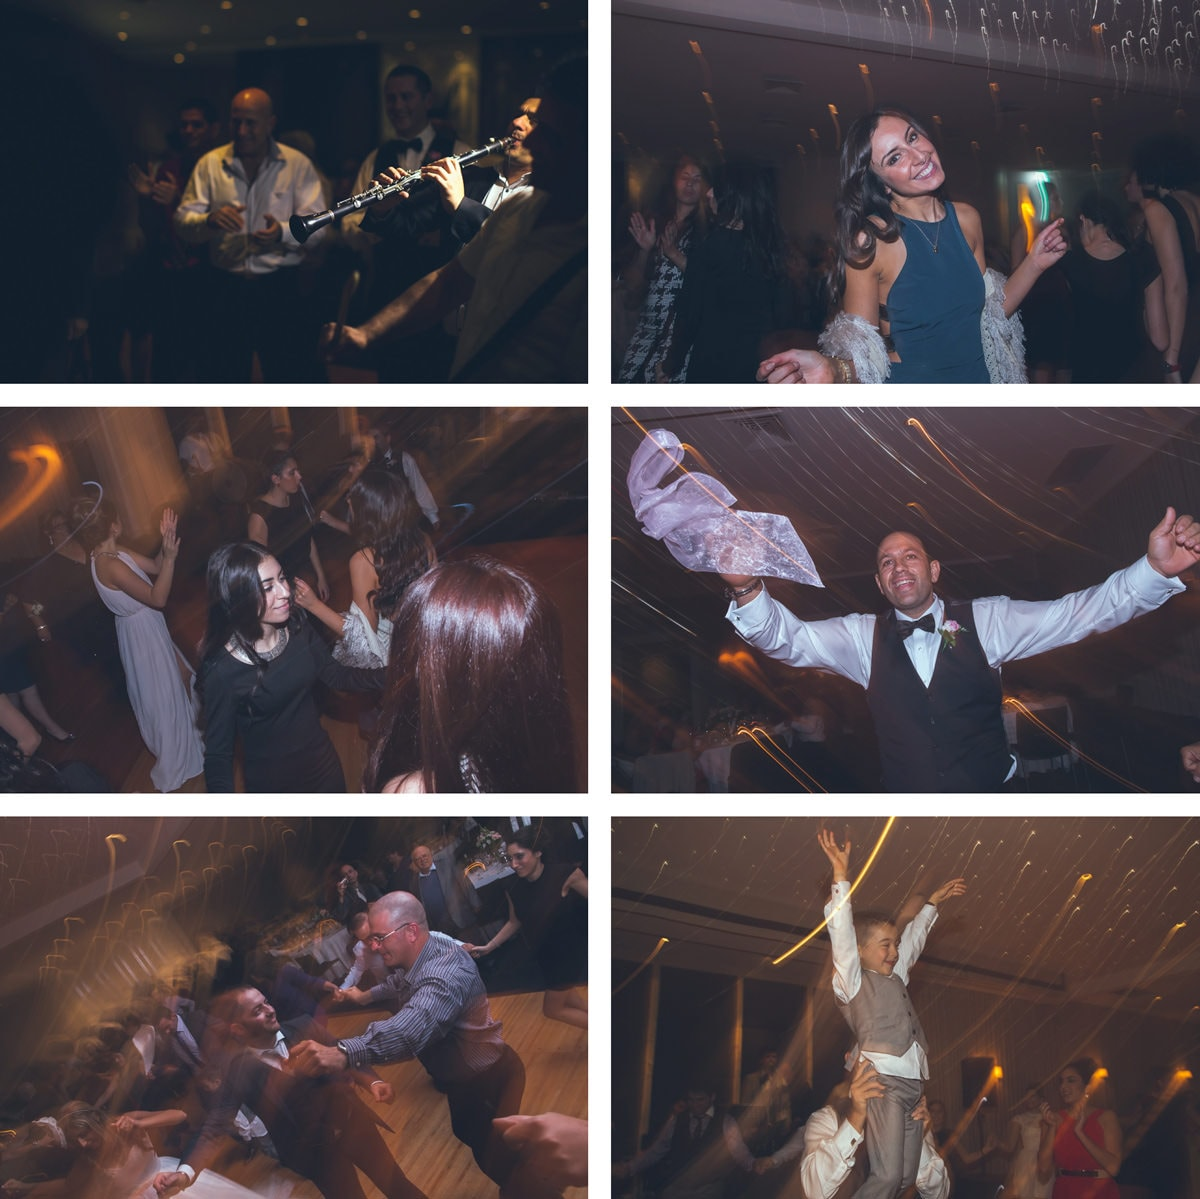 turkish wedding - party and dance - turkish wedding function in melbourne